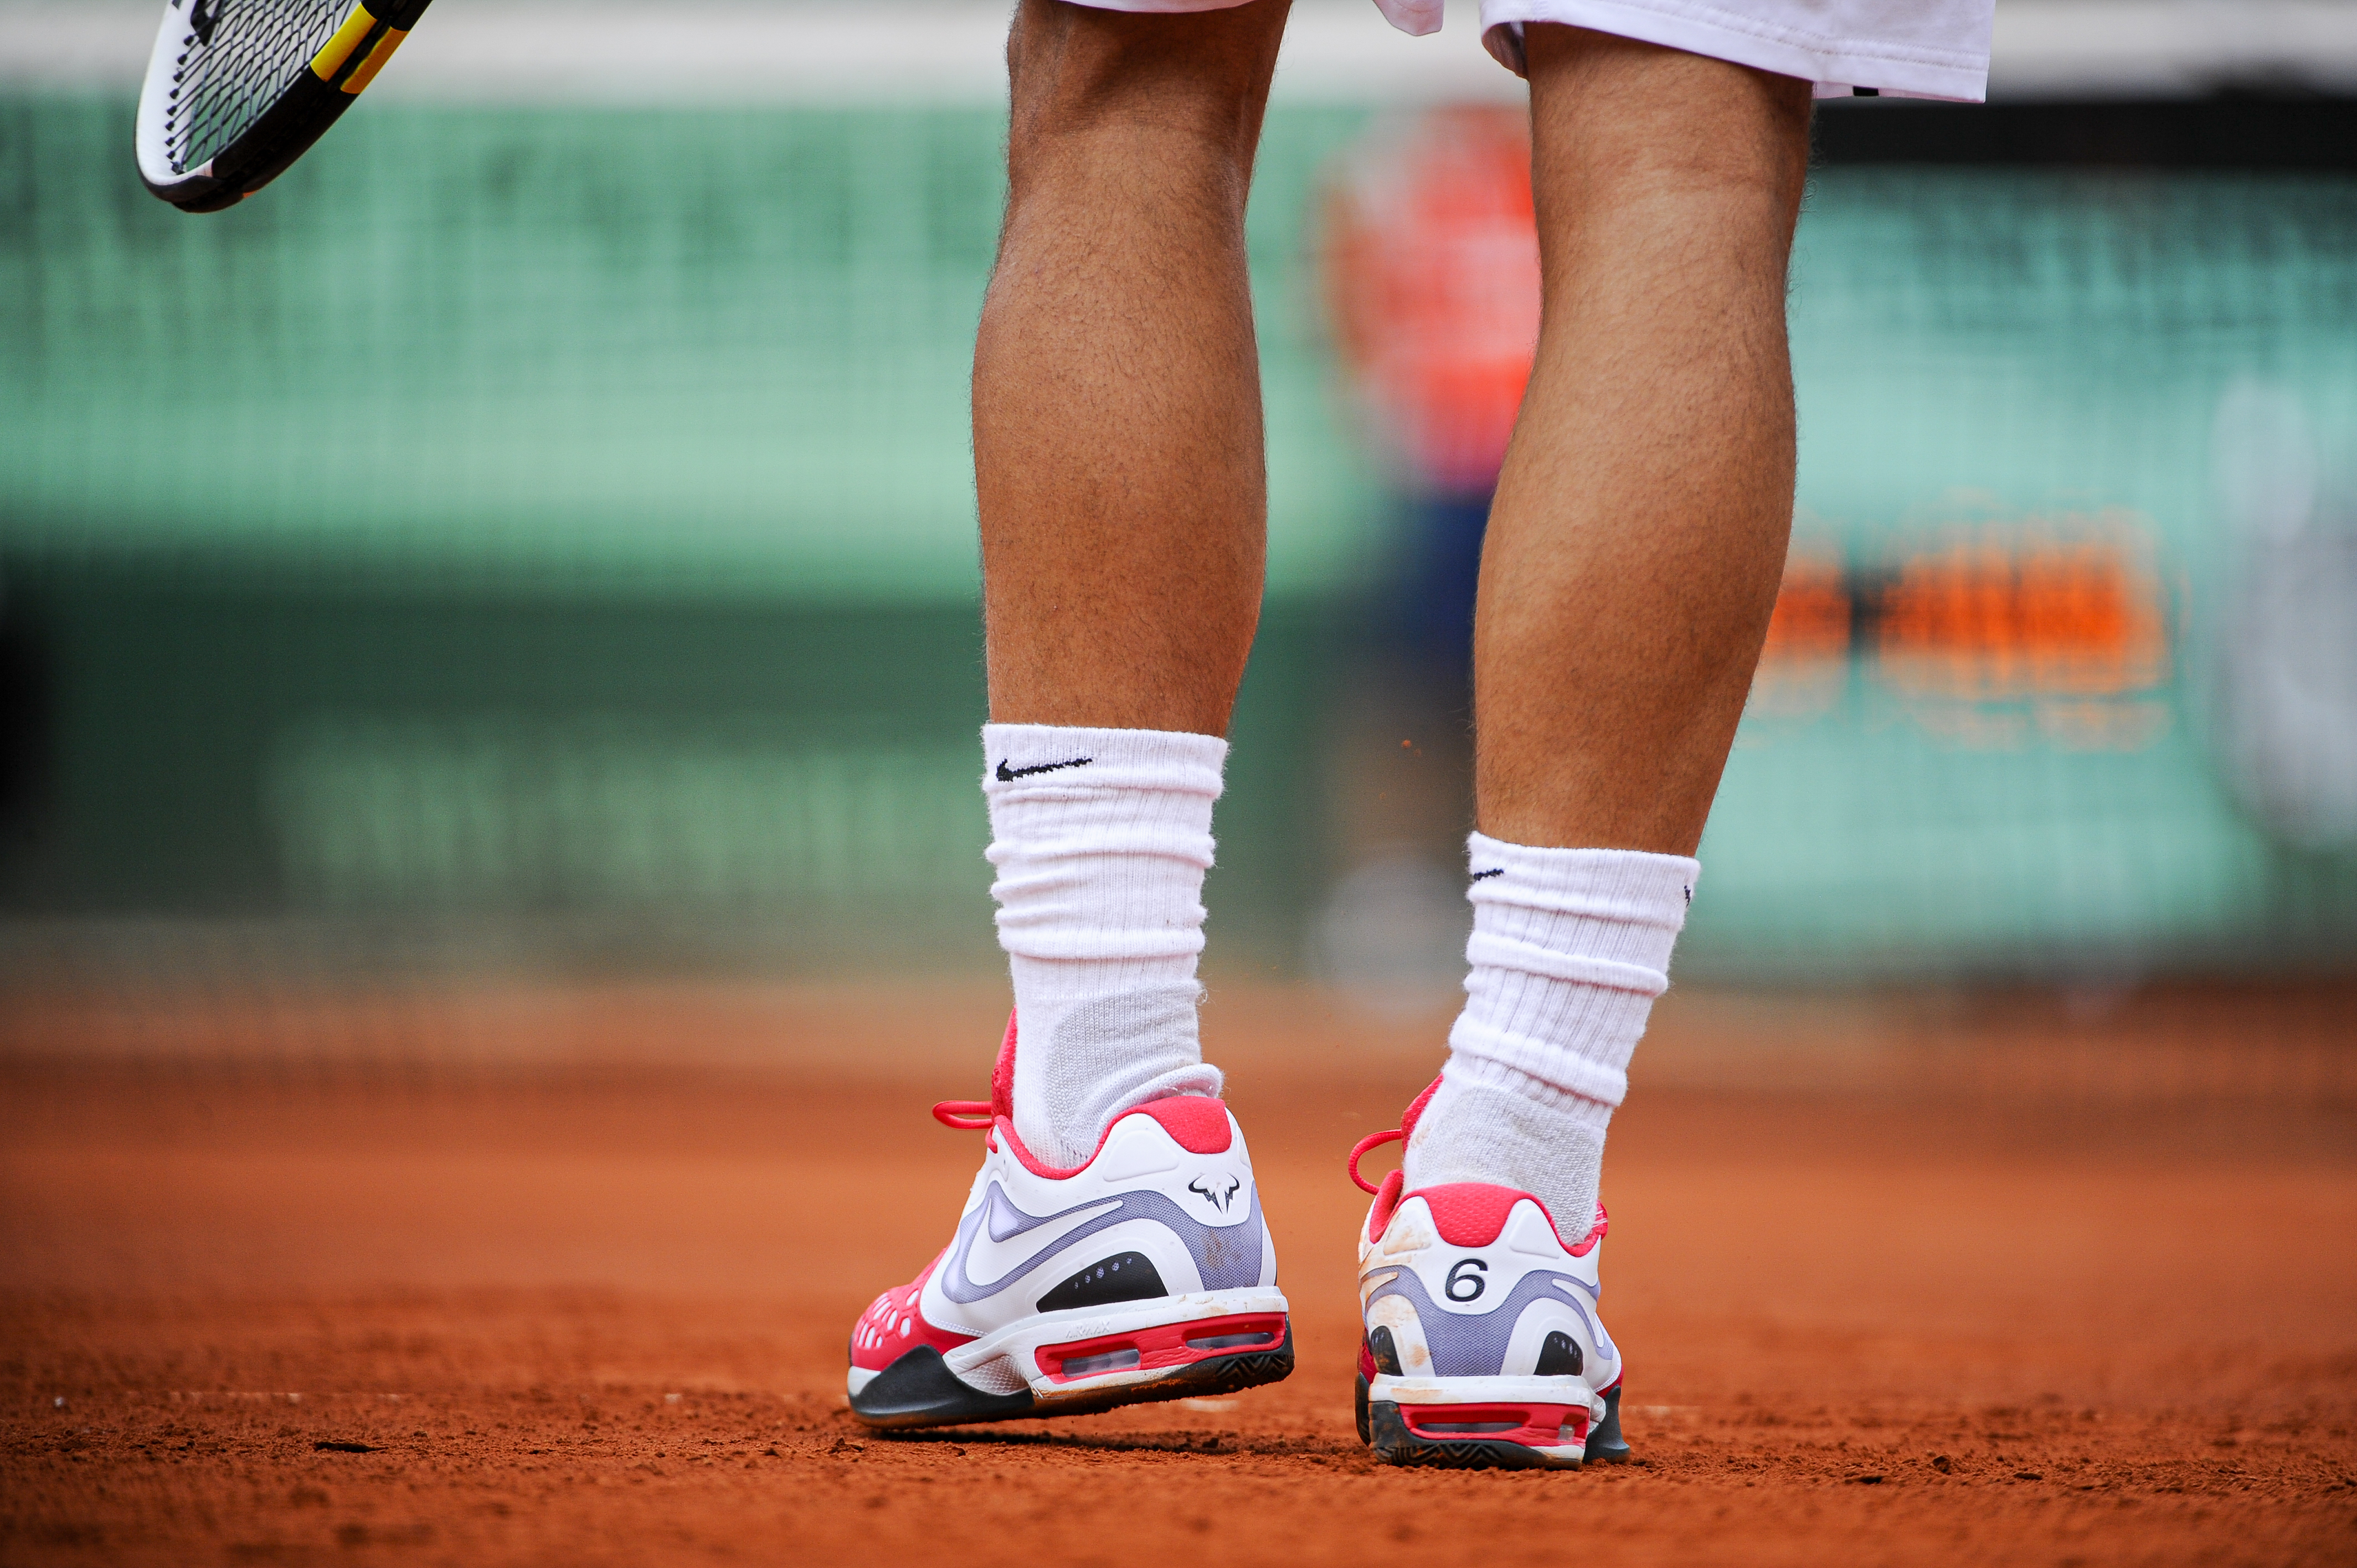 RG Culture: Champions' shoes on display